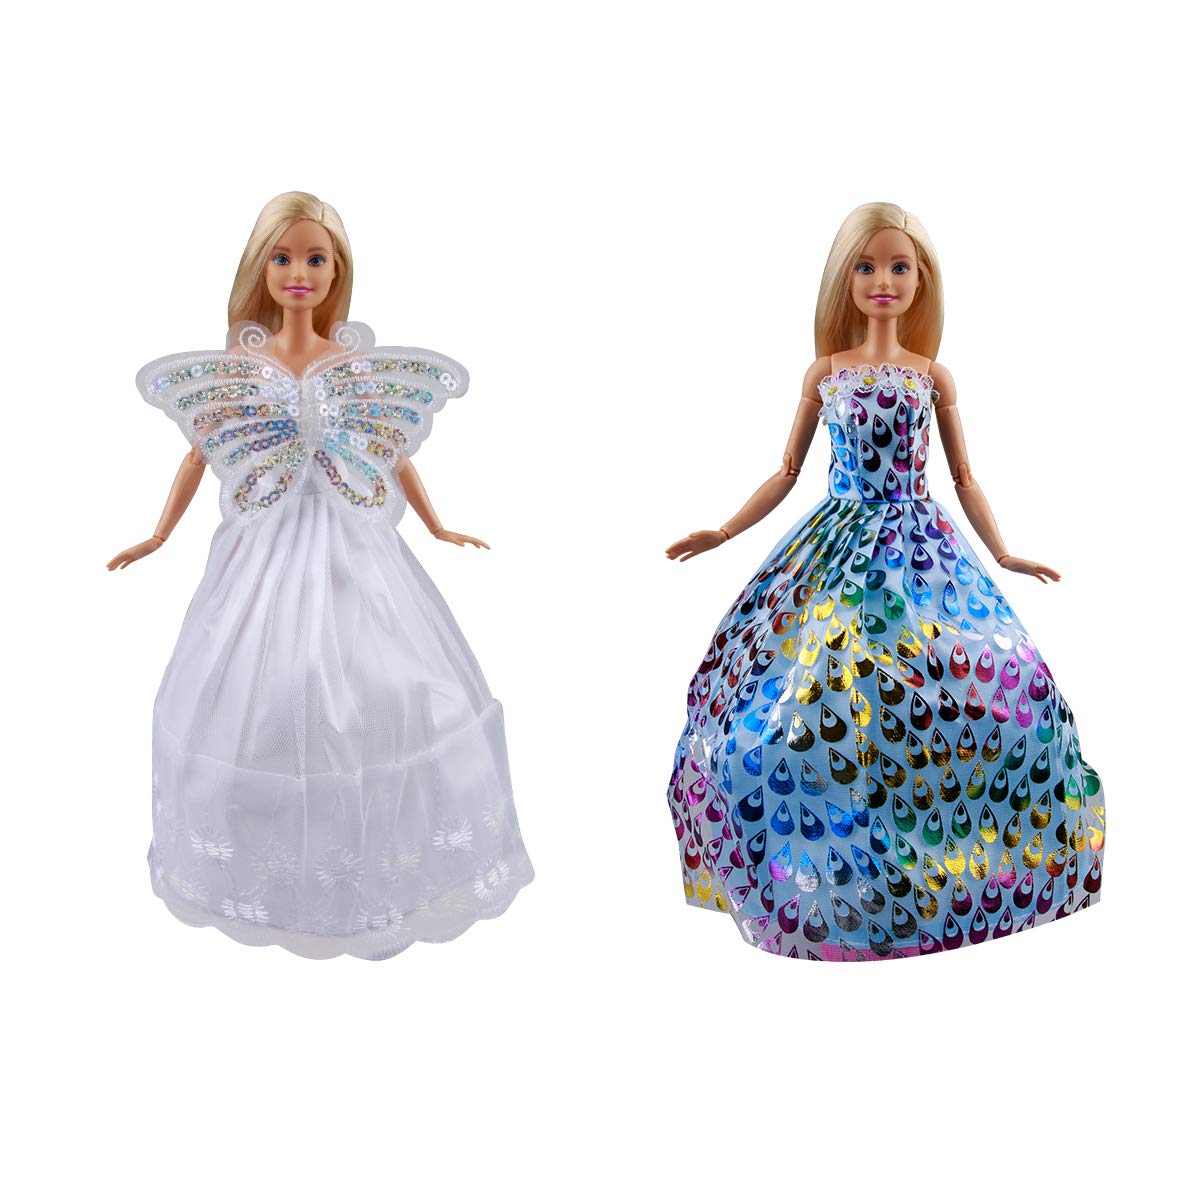 Keysse Lot 20 Items 10 Packs Wedding Party Dresses Grown Outfits for 11.5 Doll and 10 Pairs Shoes for Girl Birthday Xmas Gift